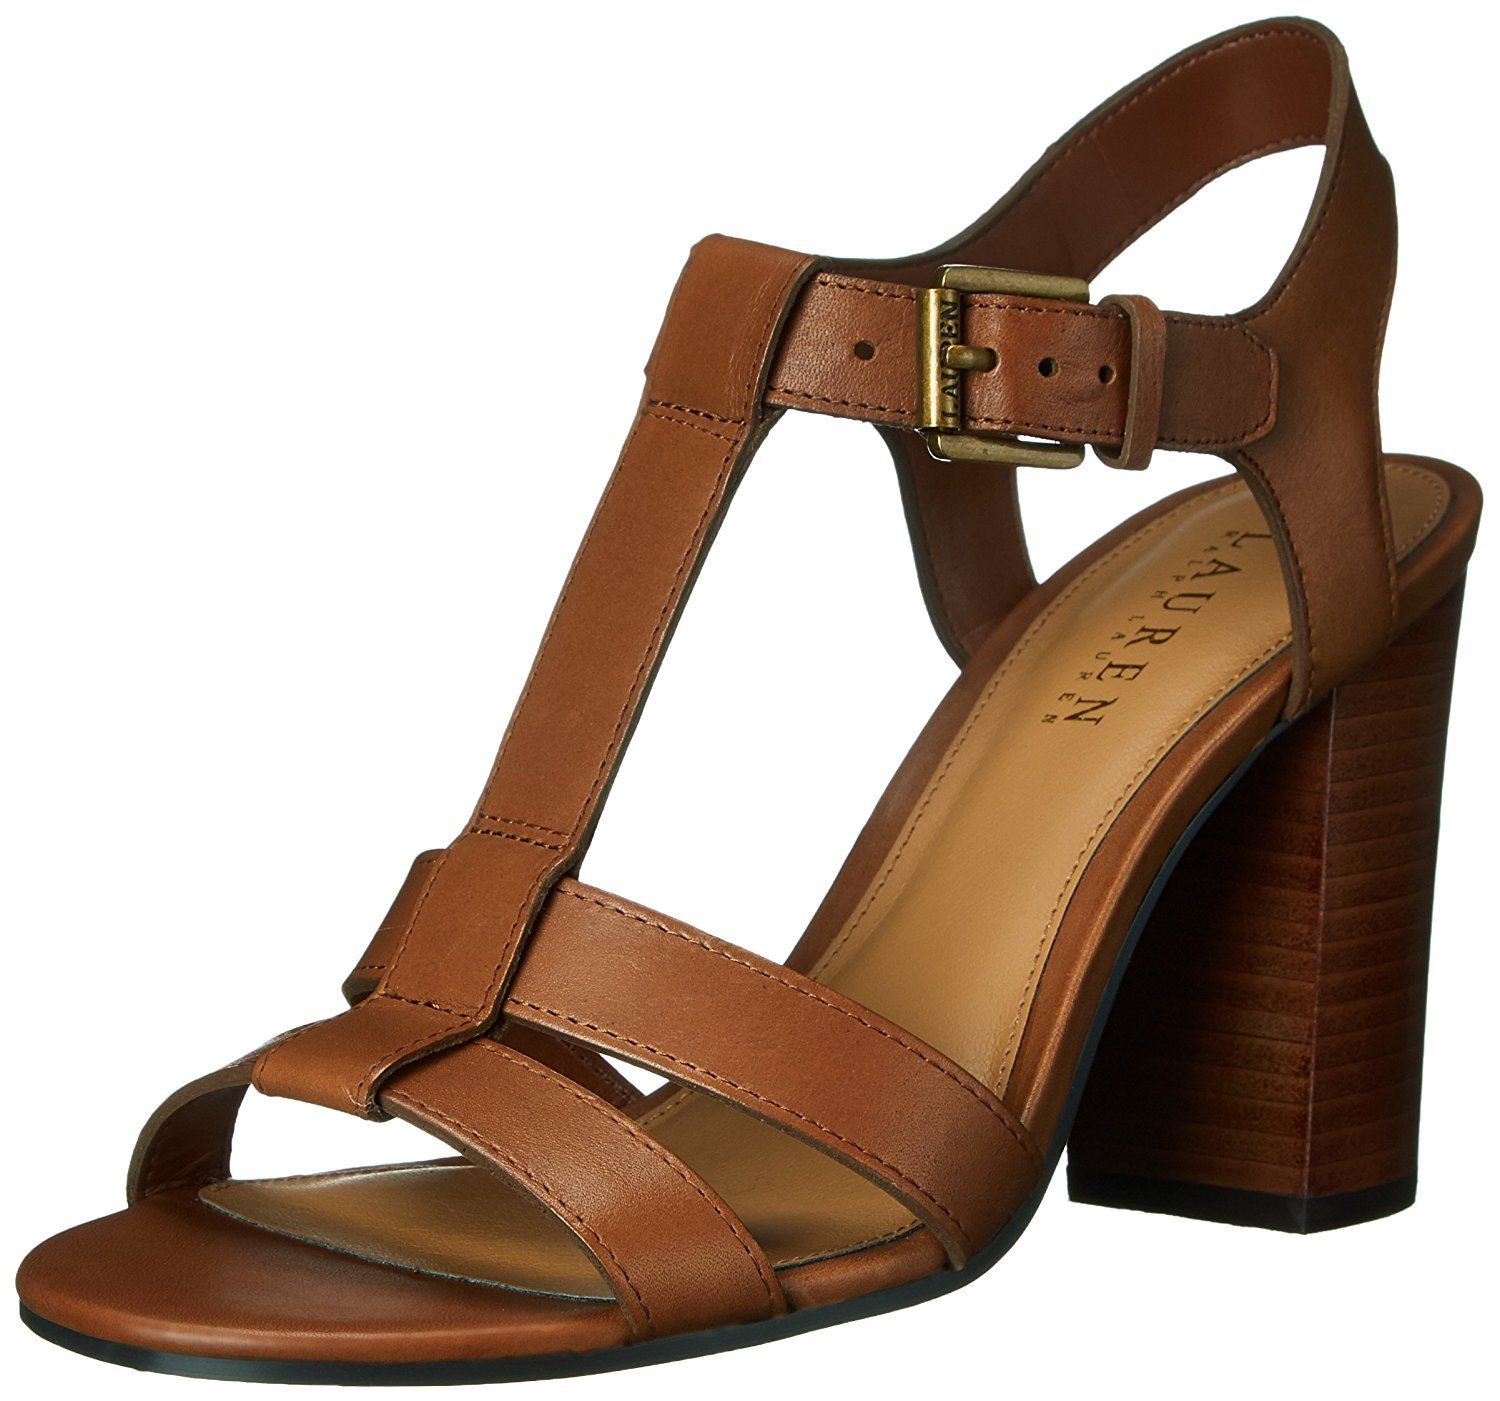 Lauren Ralph Lauren women's high heel sandals with